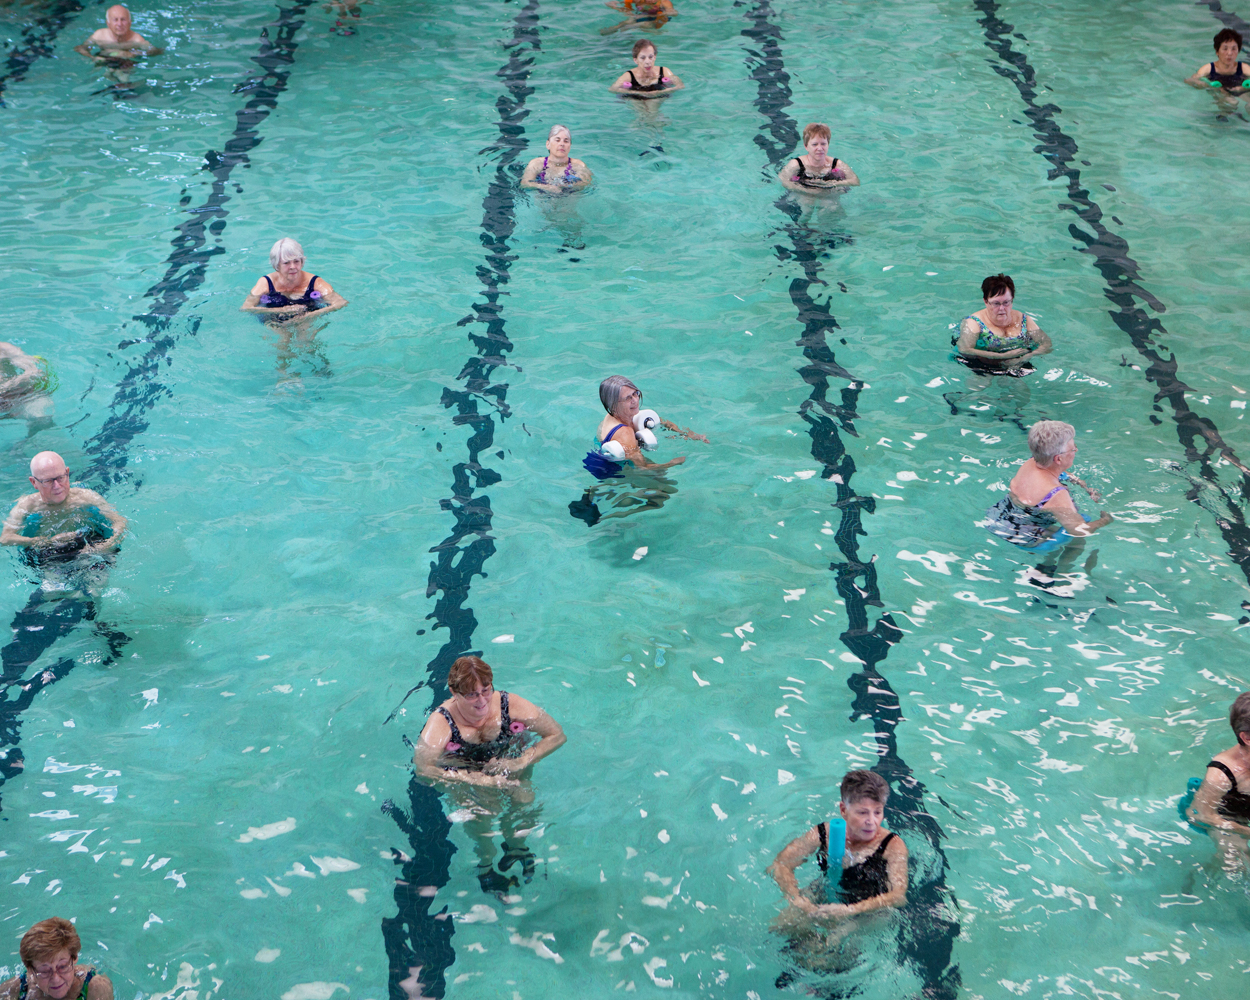 Cours d'aquagym au Palm Ridge recreation center, Sun City West